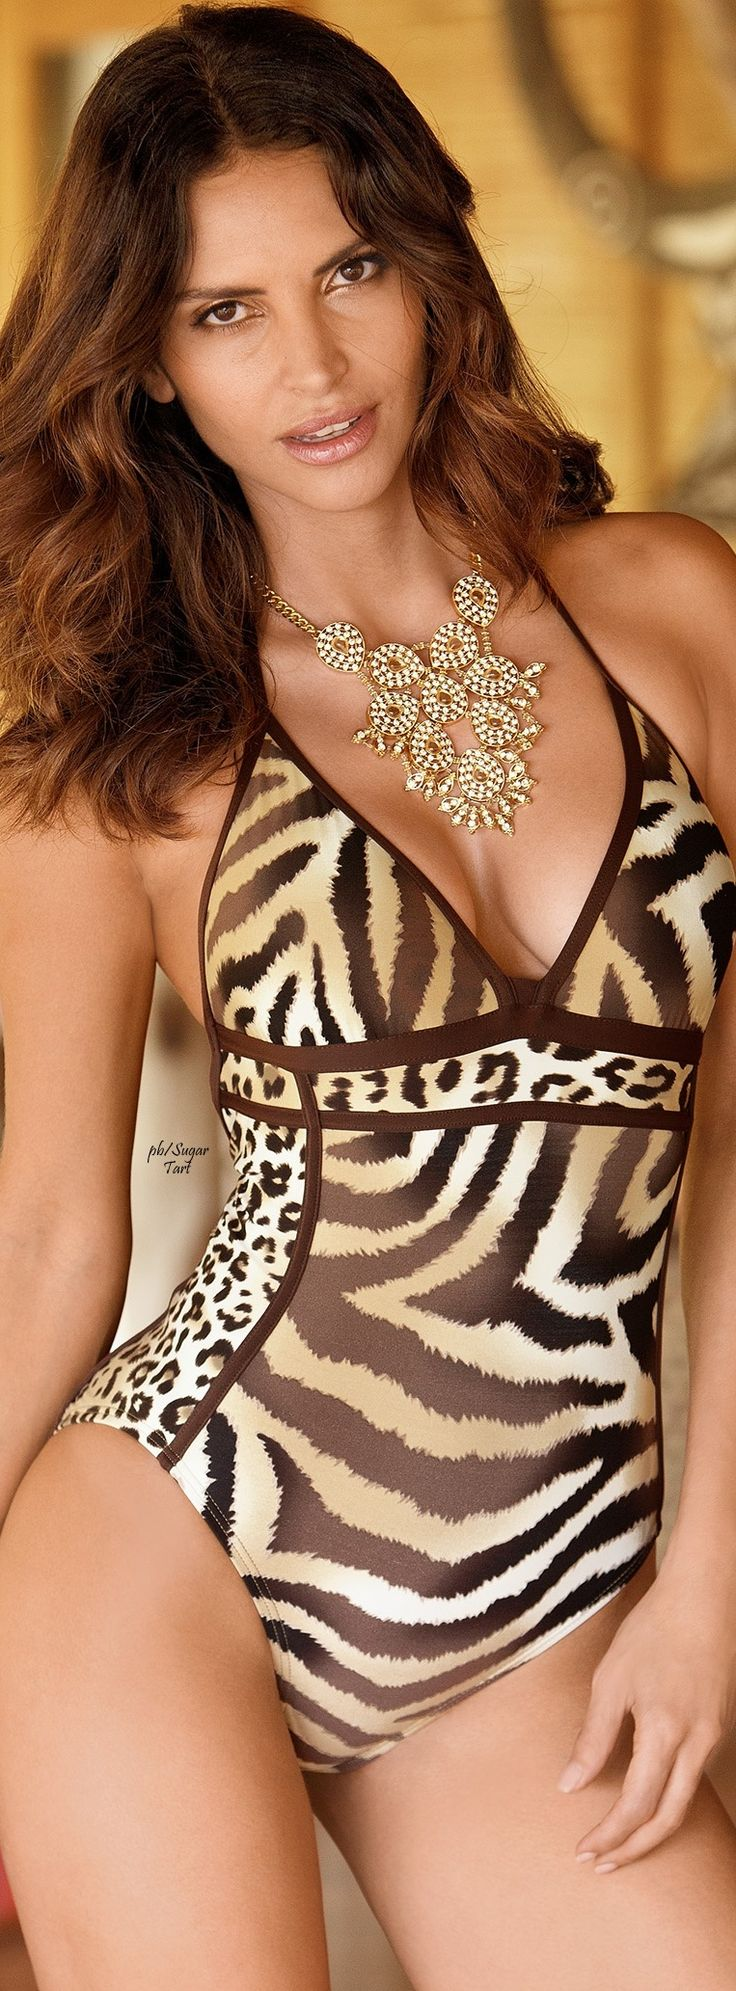 If only I had this body.... I would wear this in a heartbeat!!